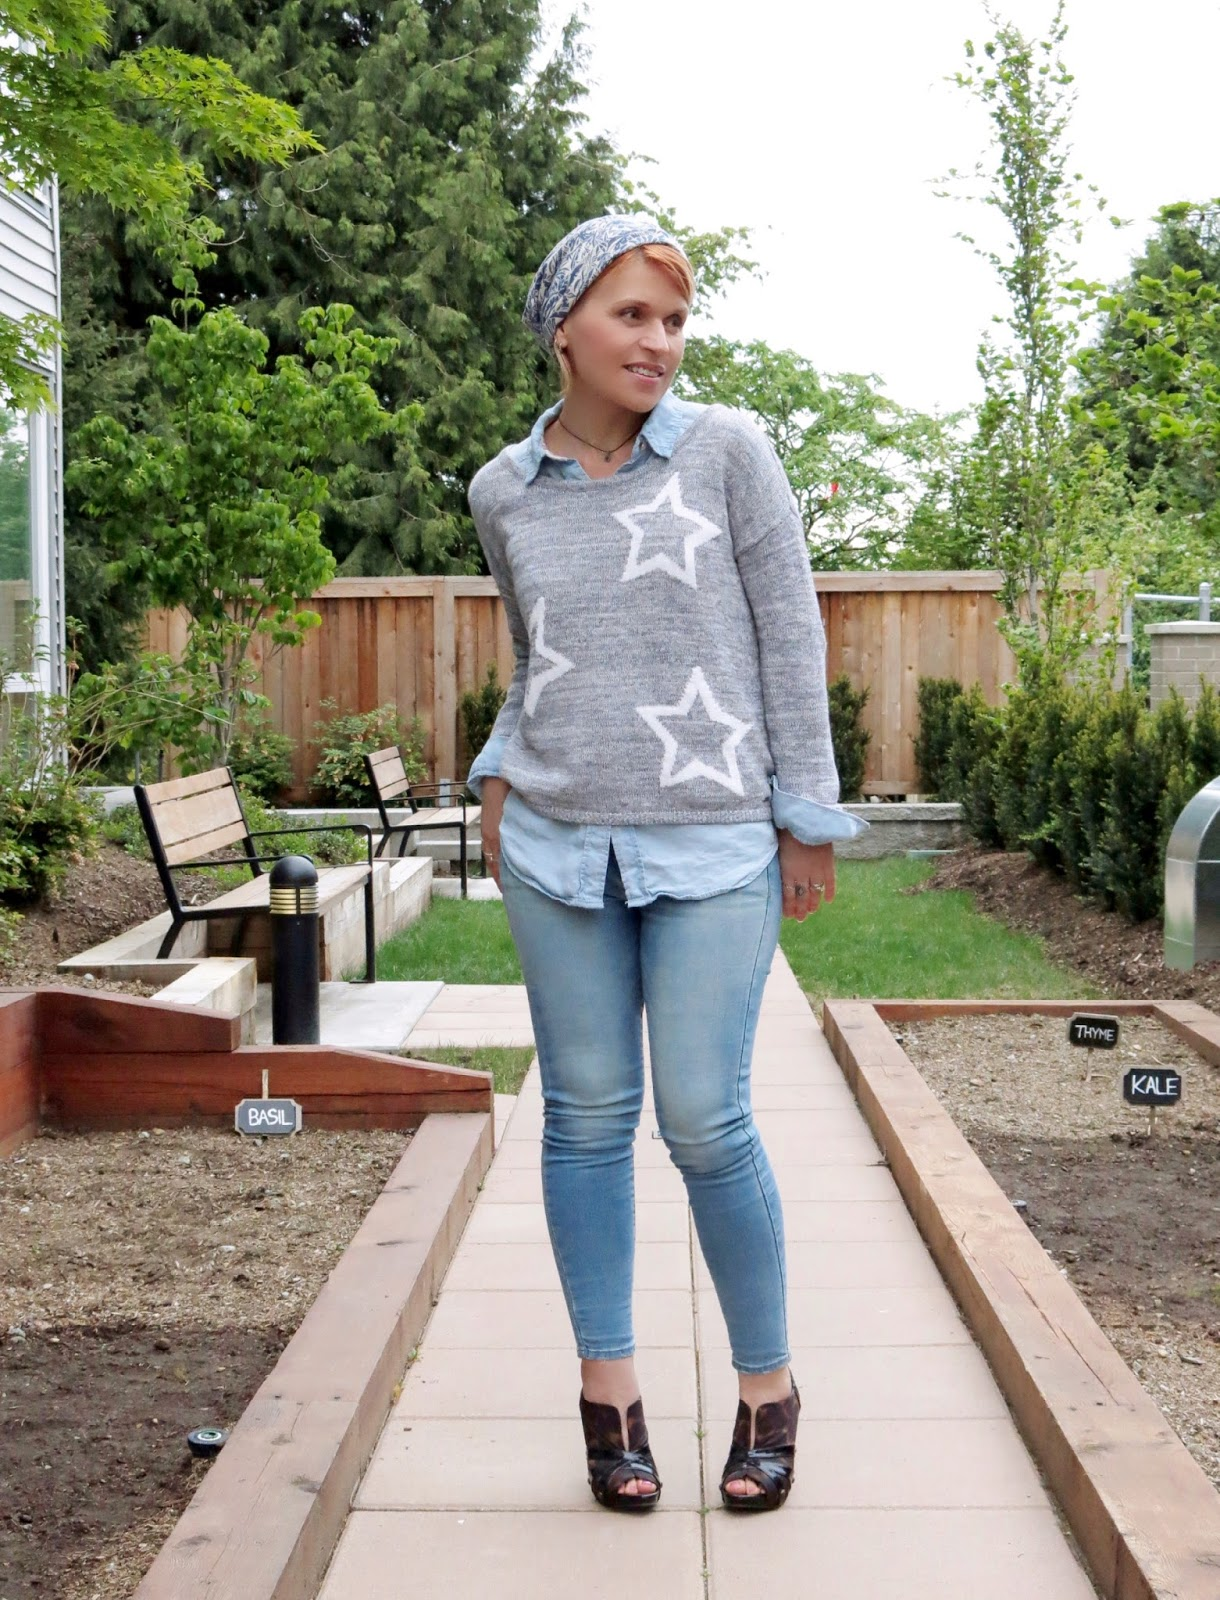 chambray shirt layered under a star-patterned sweater, skinny jeans, floral jersey beanie, and leopard heels